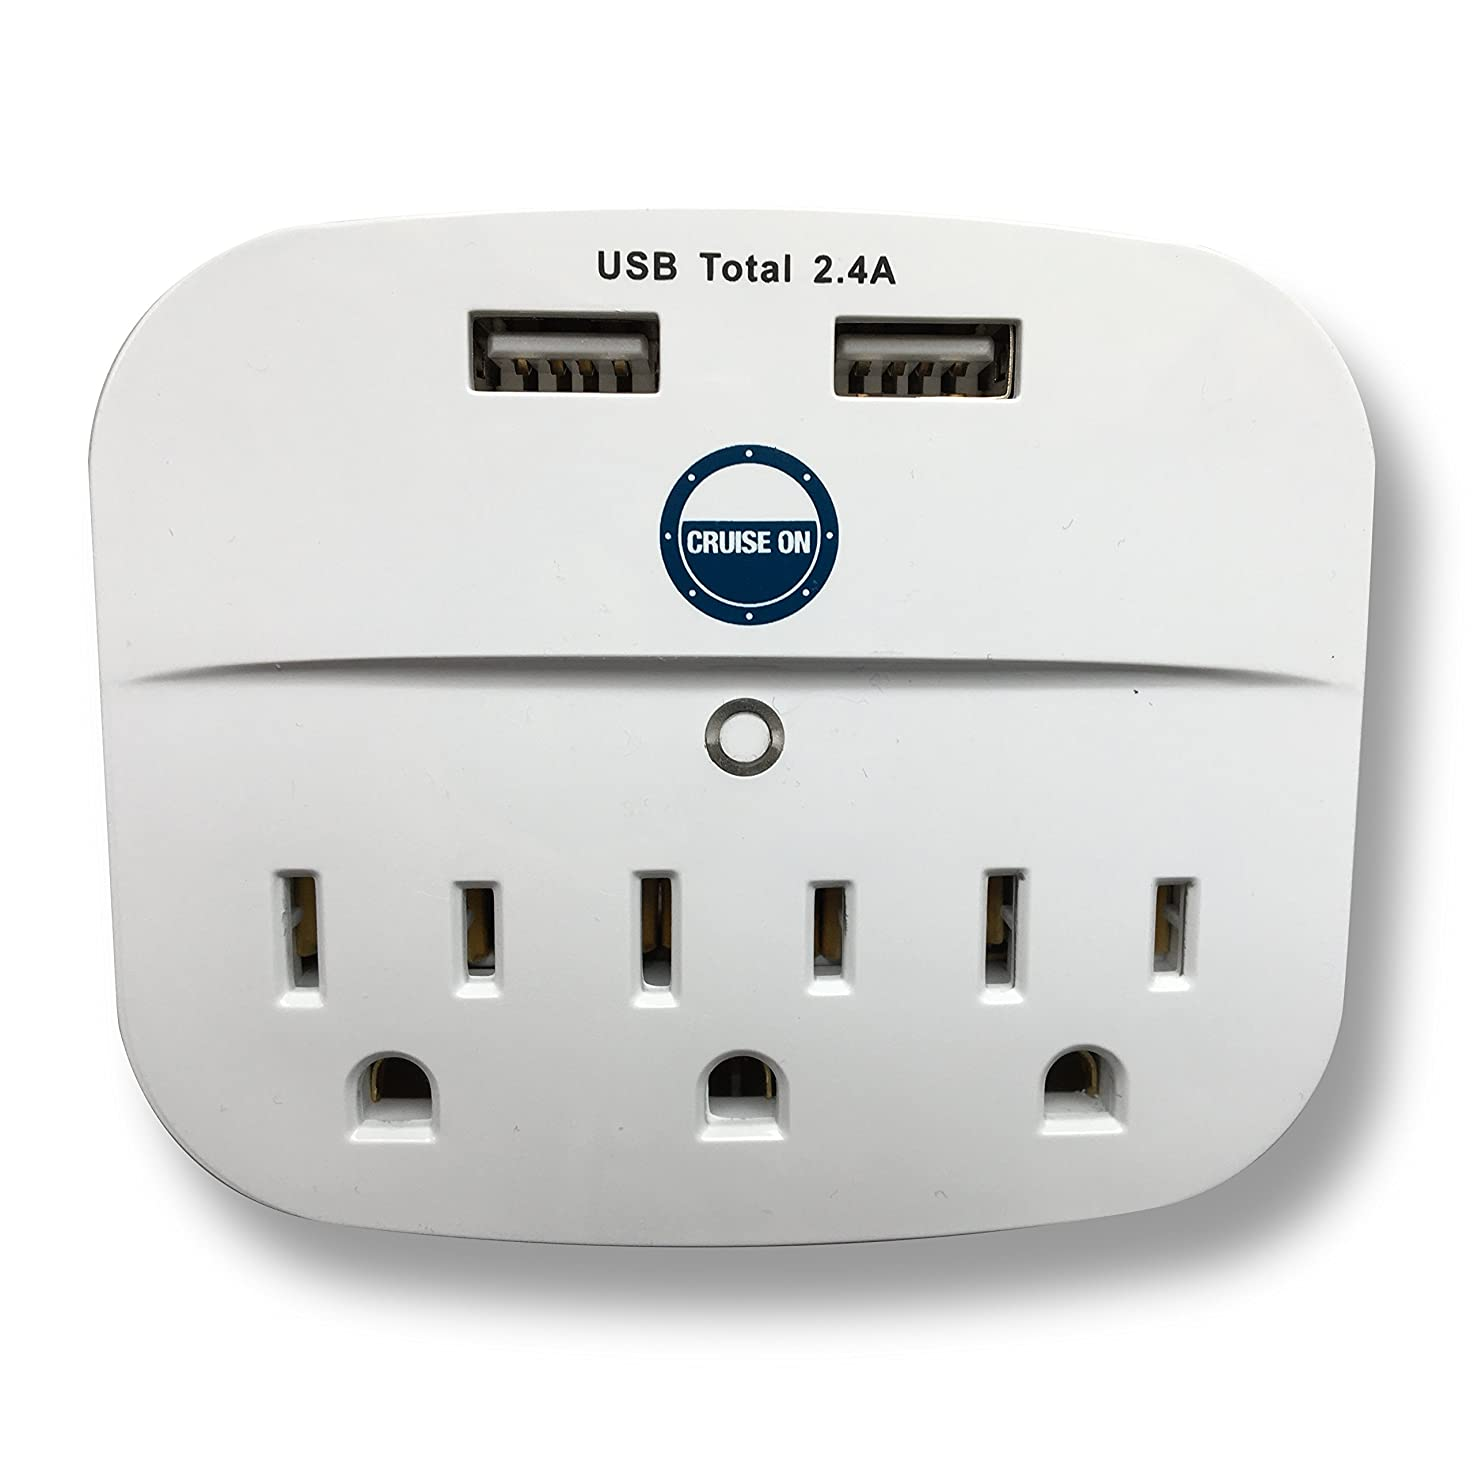 Cruise Power Strip with USB Outlets - Non Surge Protection & Ship Approved   Travel Accessories and Must Haves by Cruise On jcbmifbxuadkb4